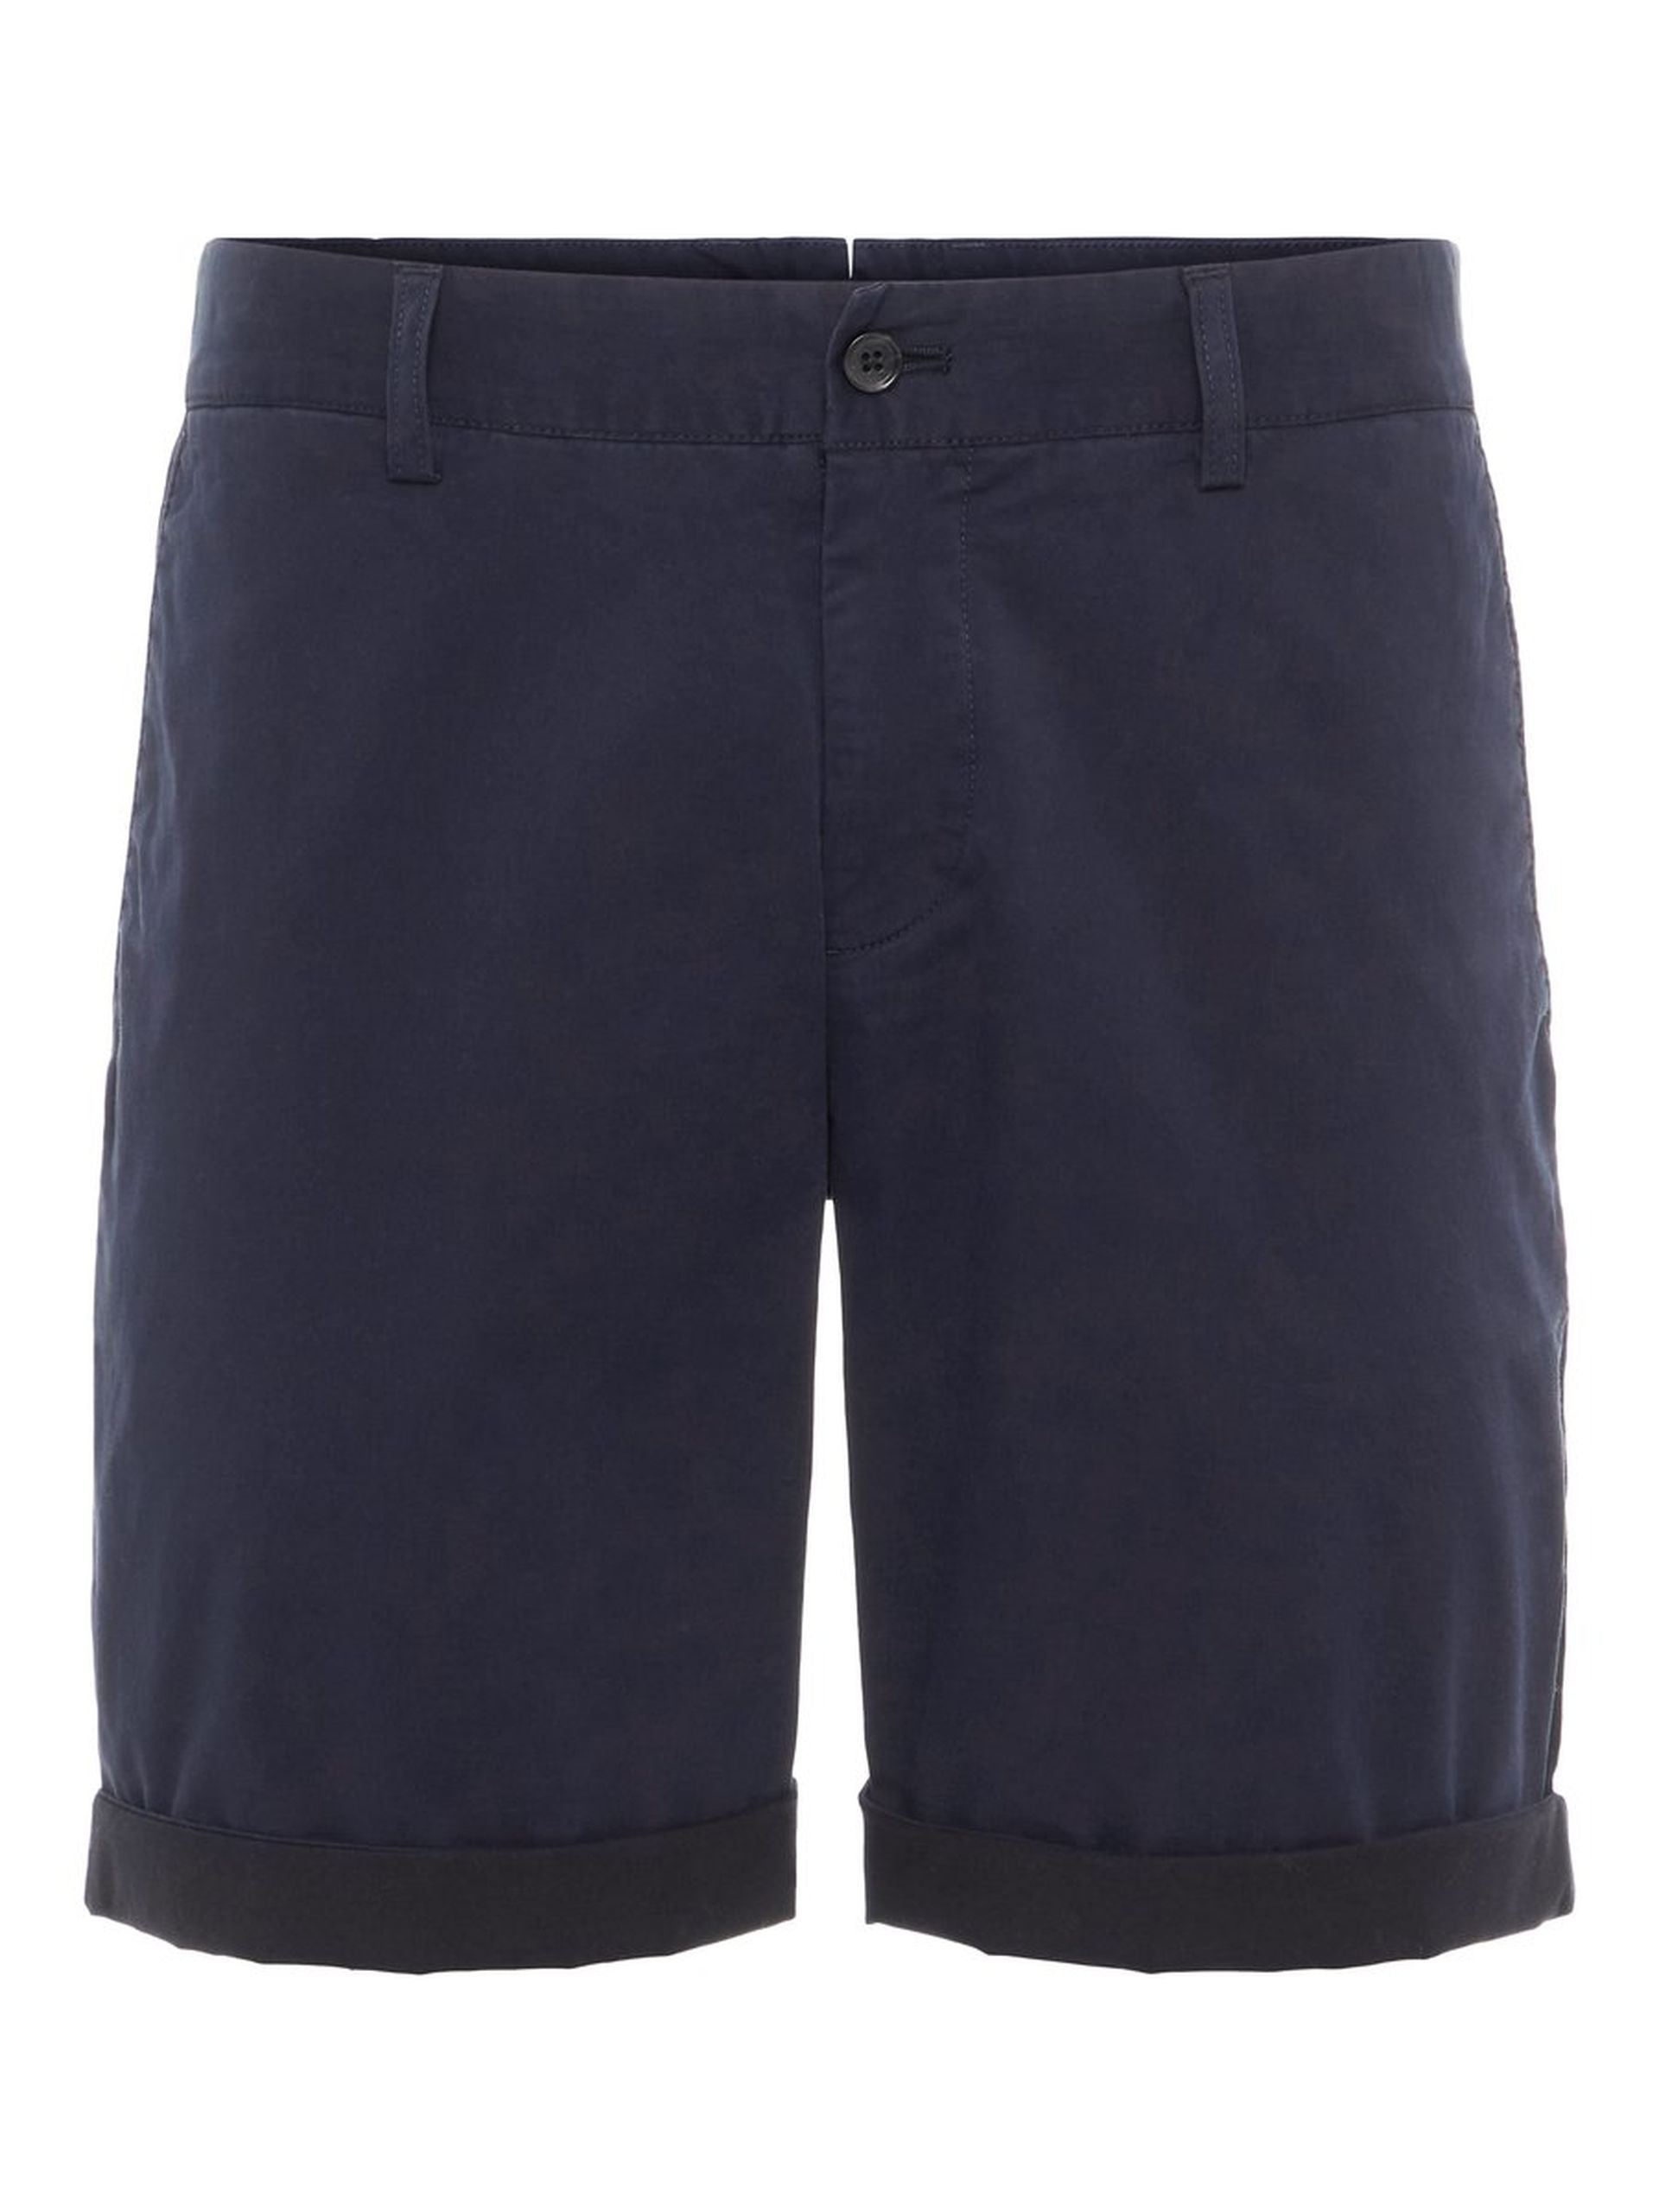 Men's premium quality long summer shorts